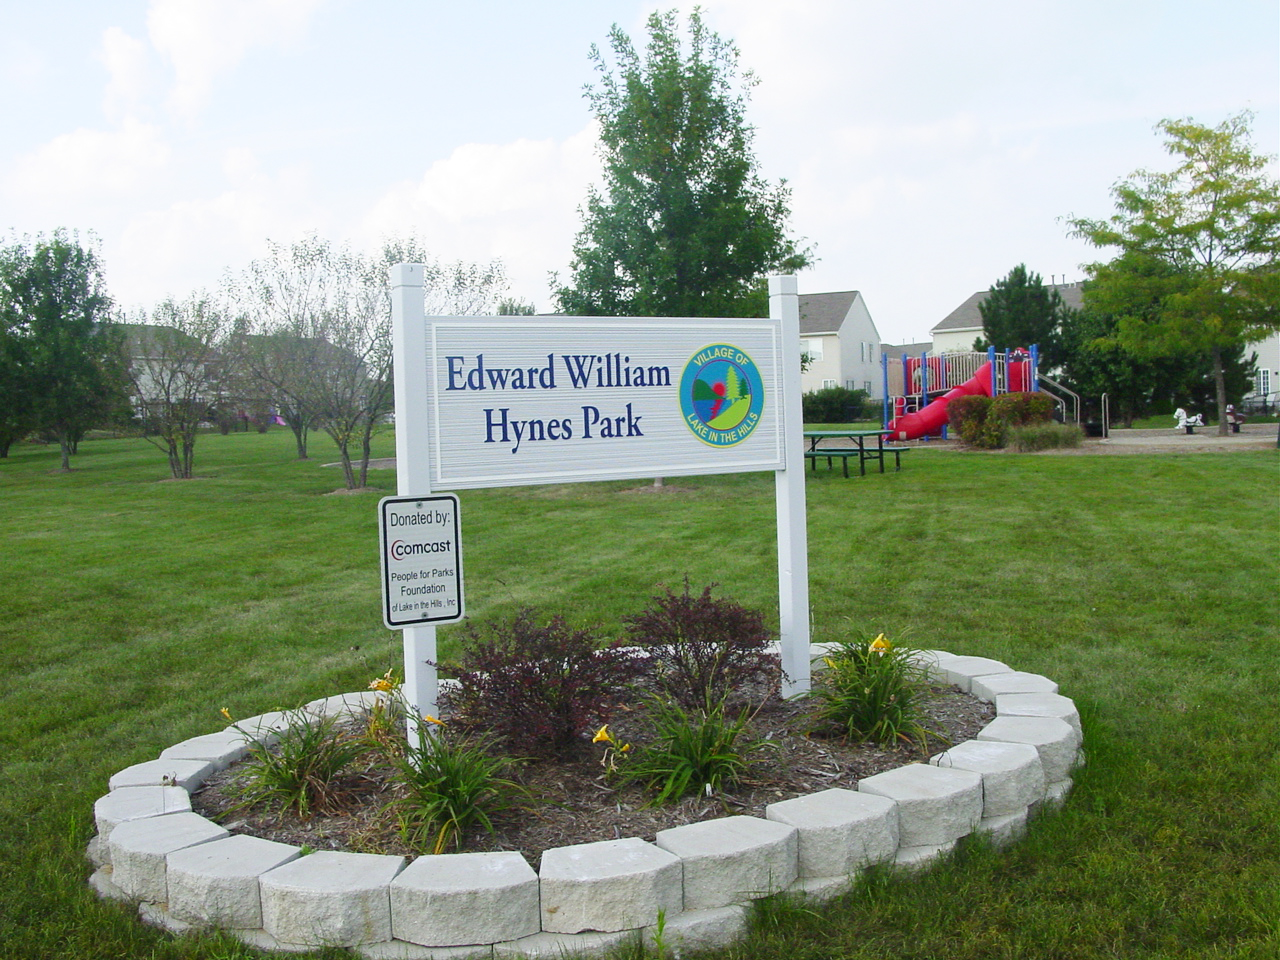 Edward William Hynes Park